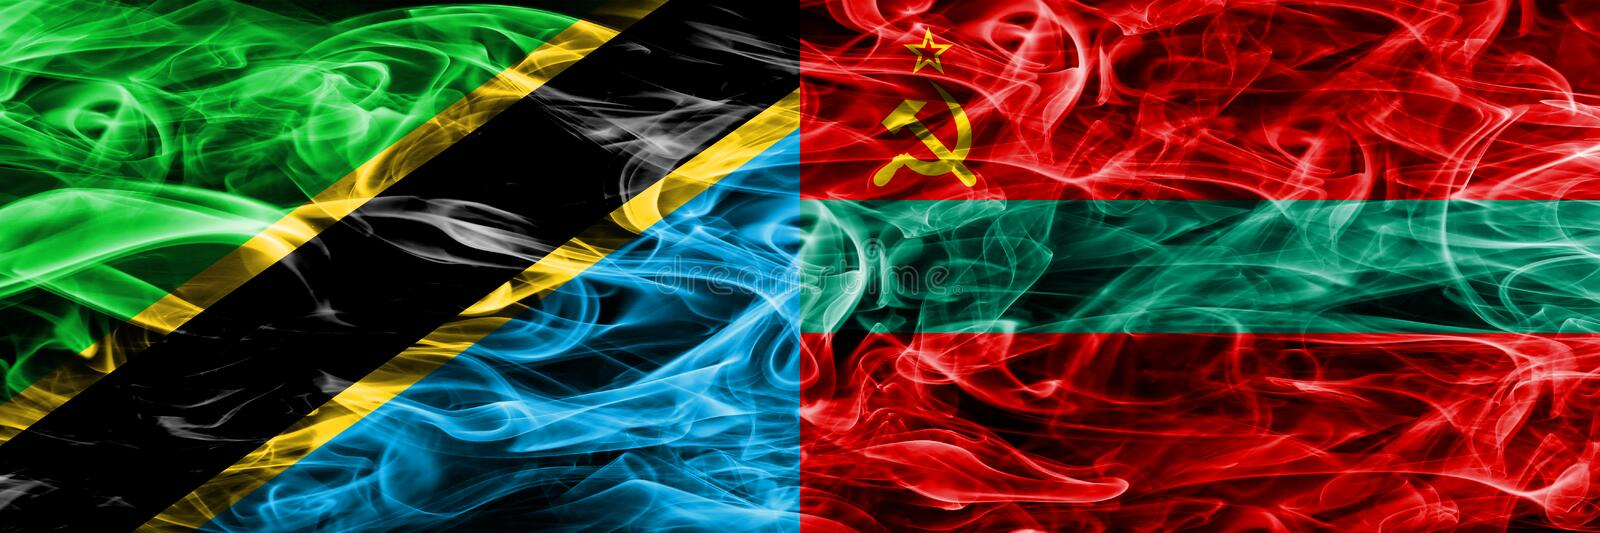 Tanzania vs Transnistria smoke flags placed side by side. Thick colored silky smoke flags of Tanzanian and Transnistria.  stock photography